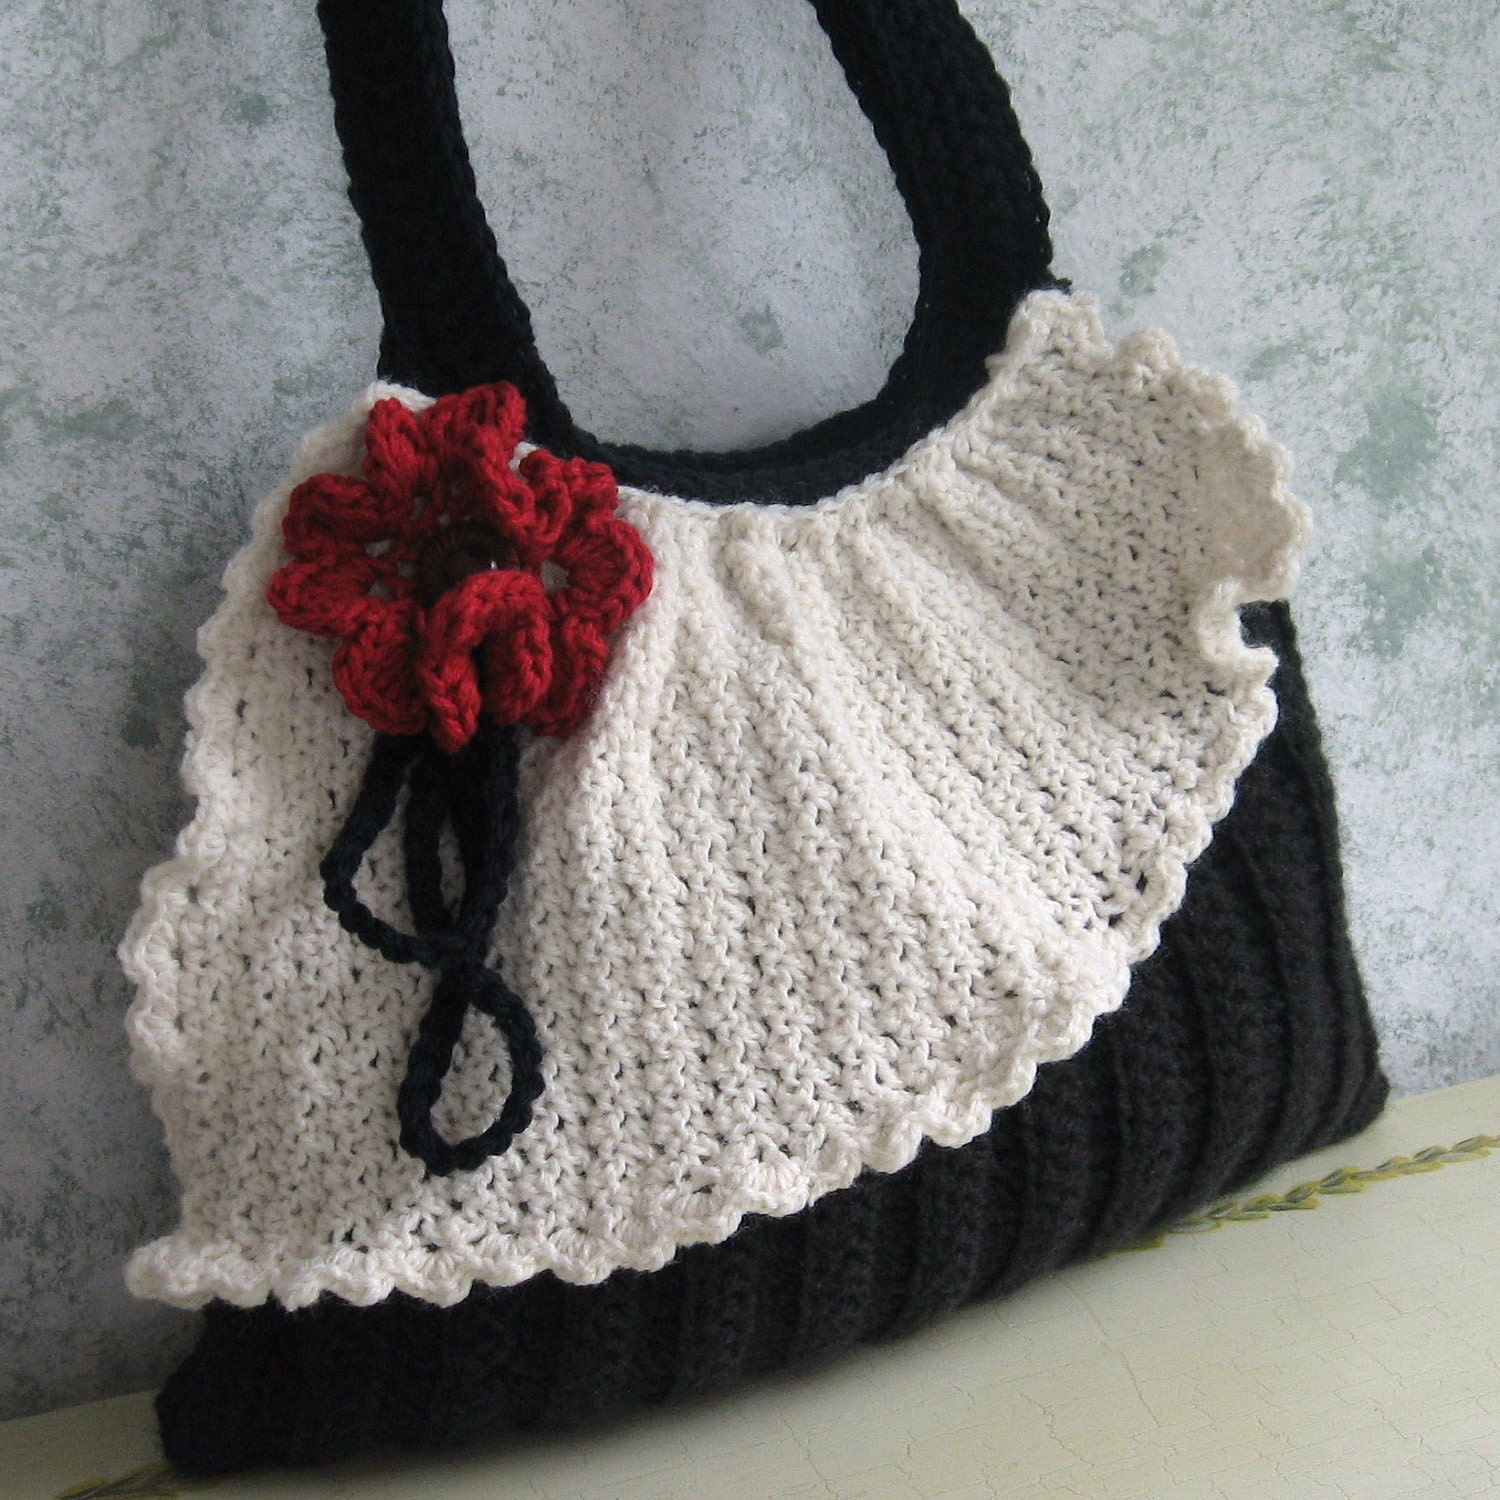 New Crochet Bags : Crochet Purse Pattern Pleated Bag With Drape And by kalliedesigns